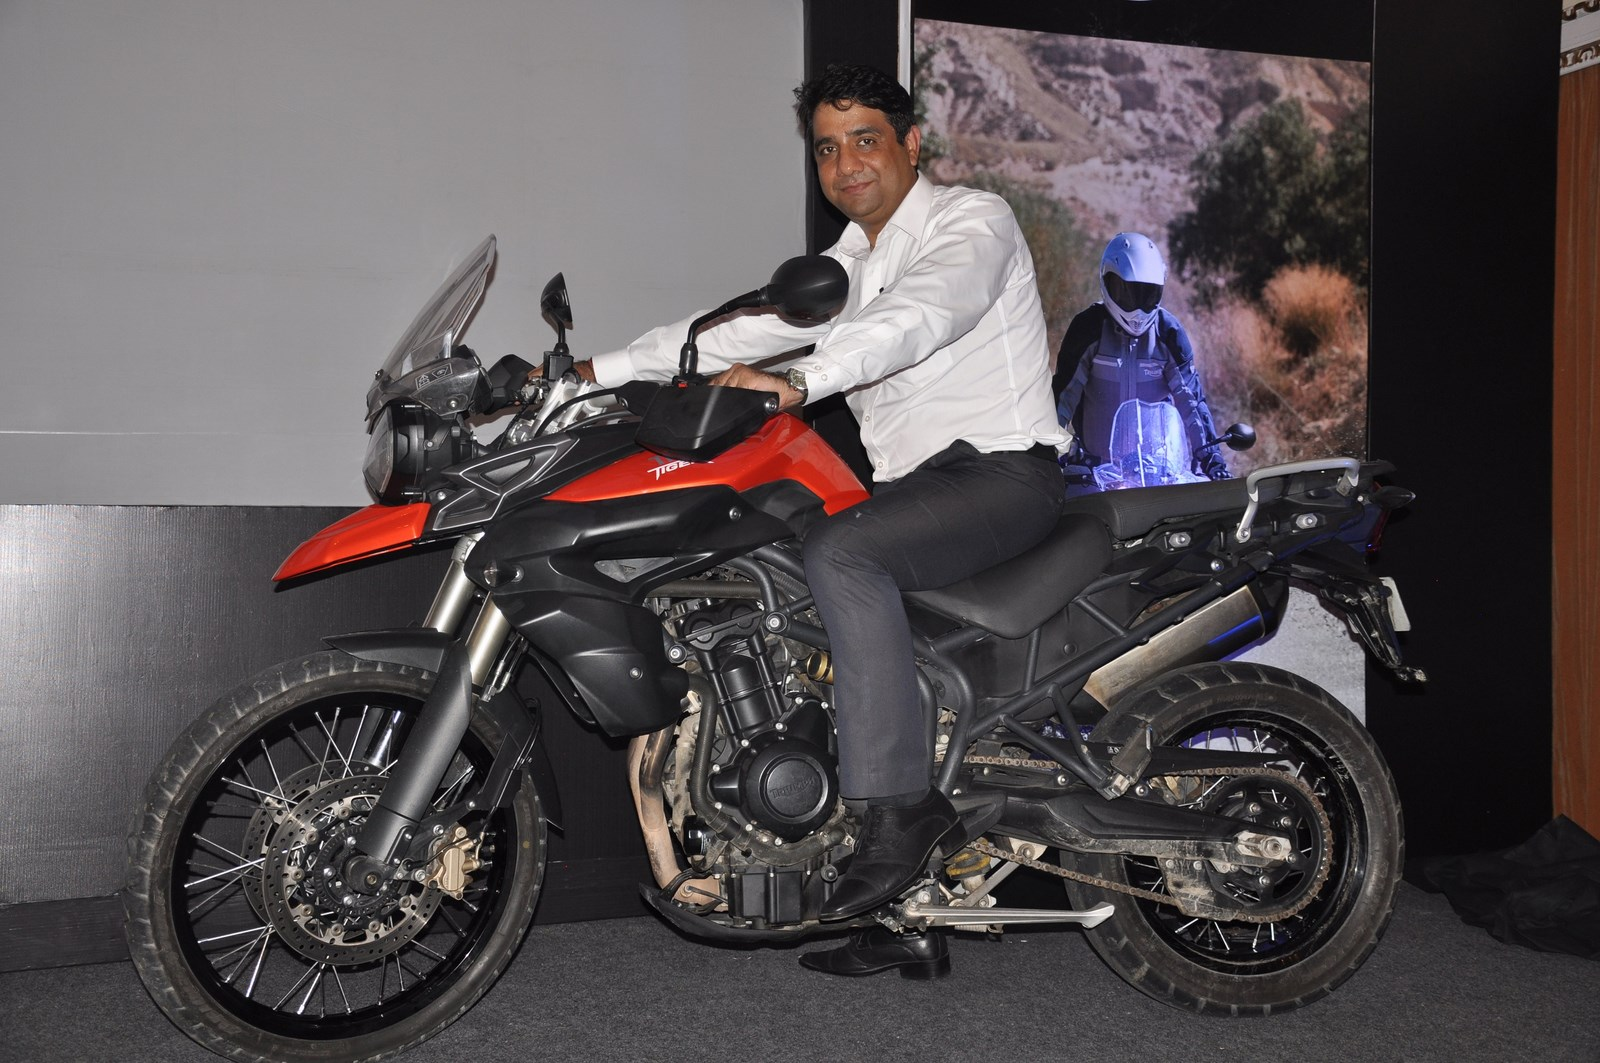 Triumph Motorcycles India Clocks 600 Bookings In 8 Months